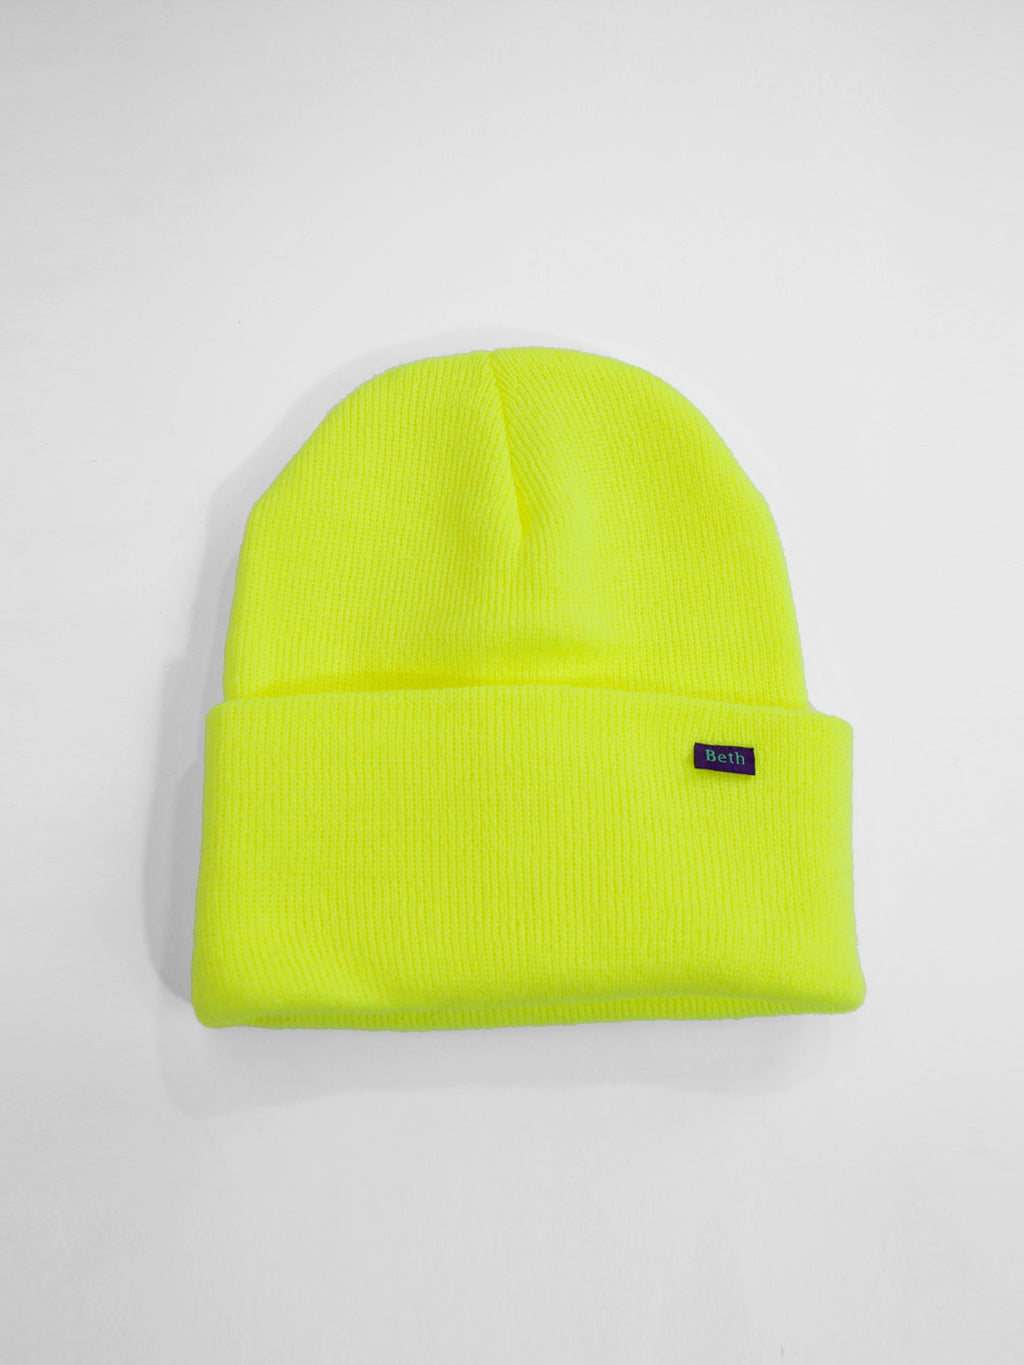 Beth - Tuque / Day Glo